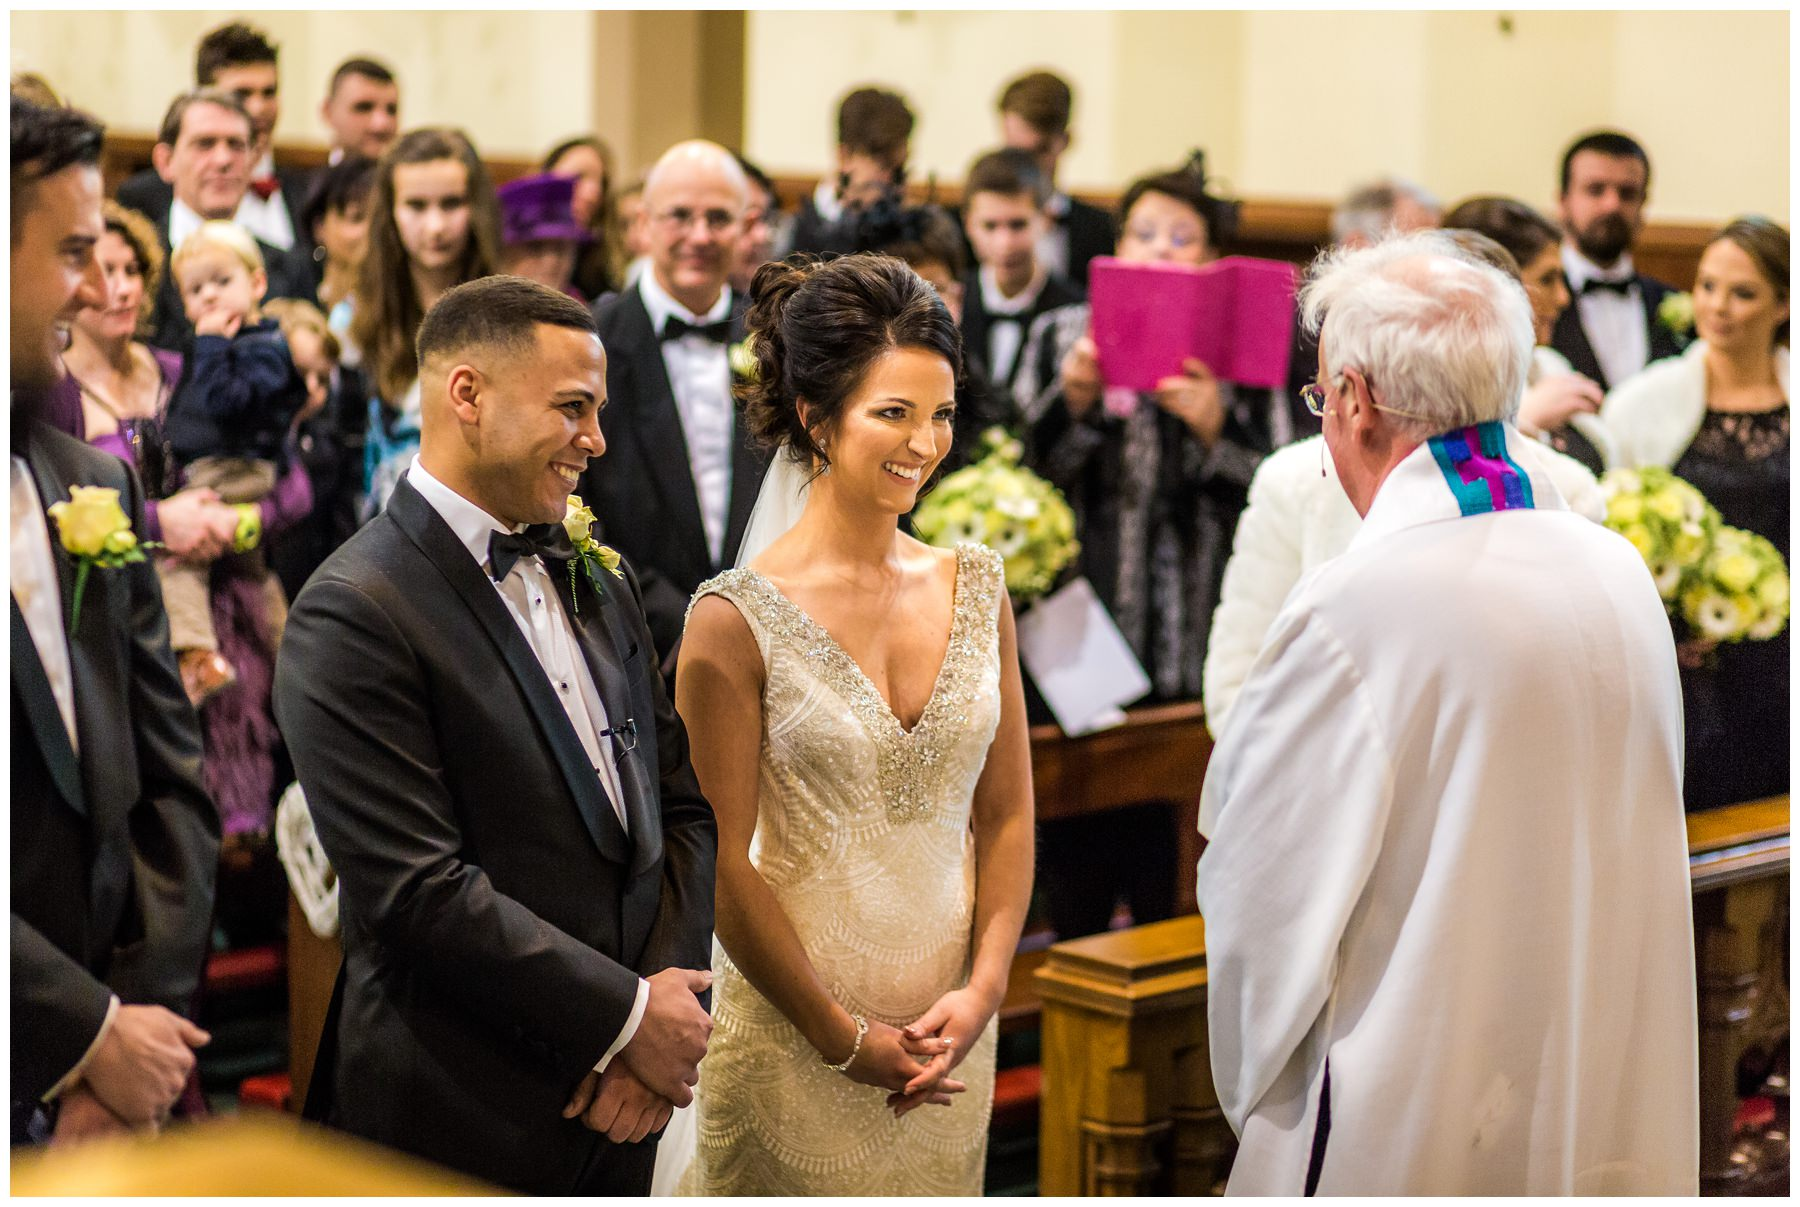 bride smiling at the end of the aisle stood next to groom